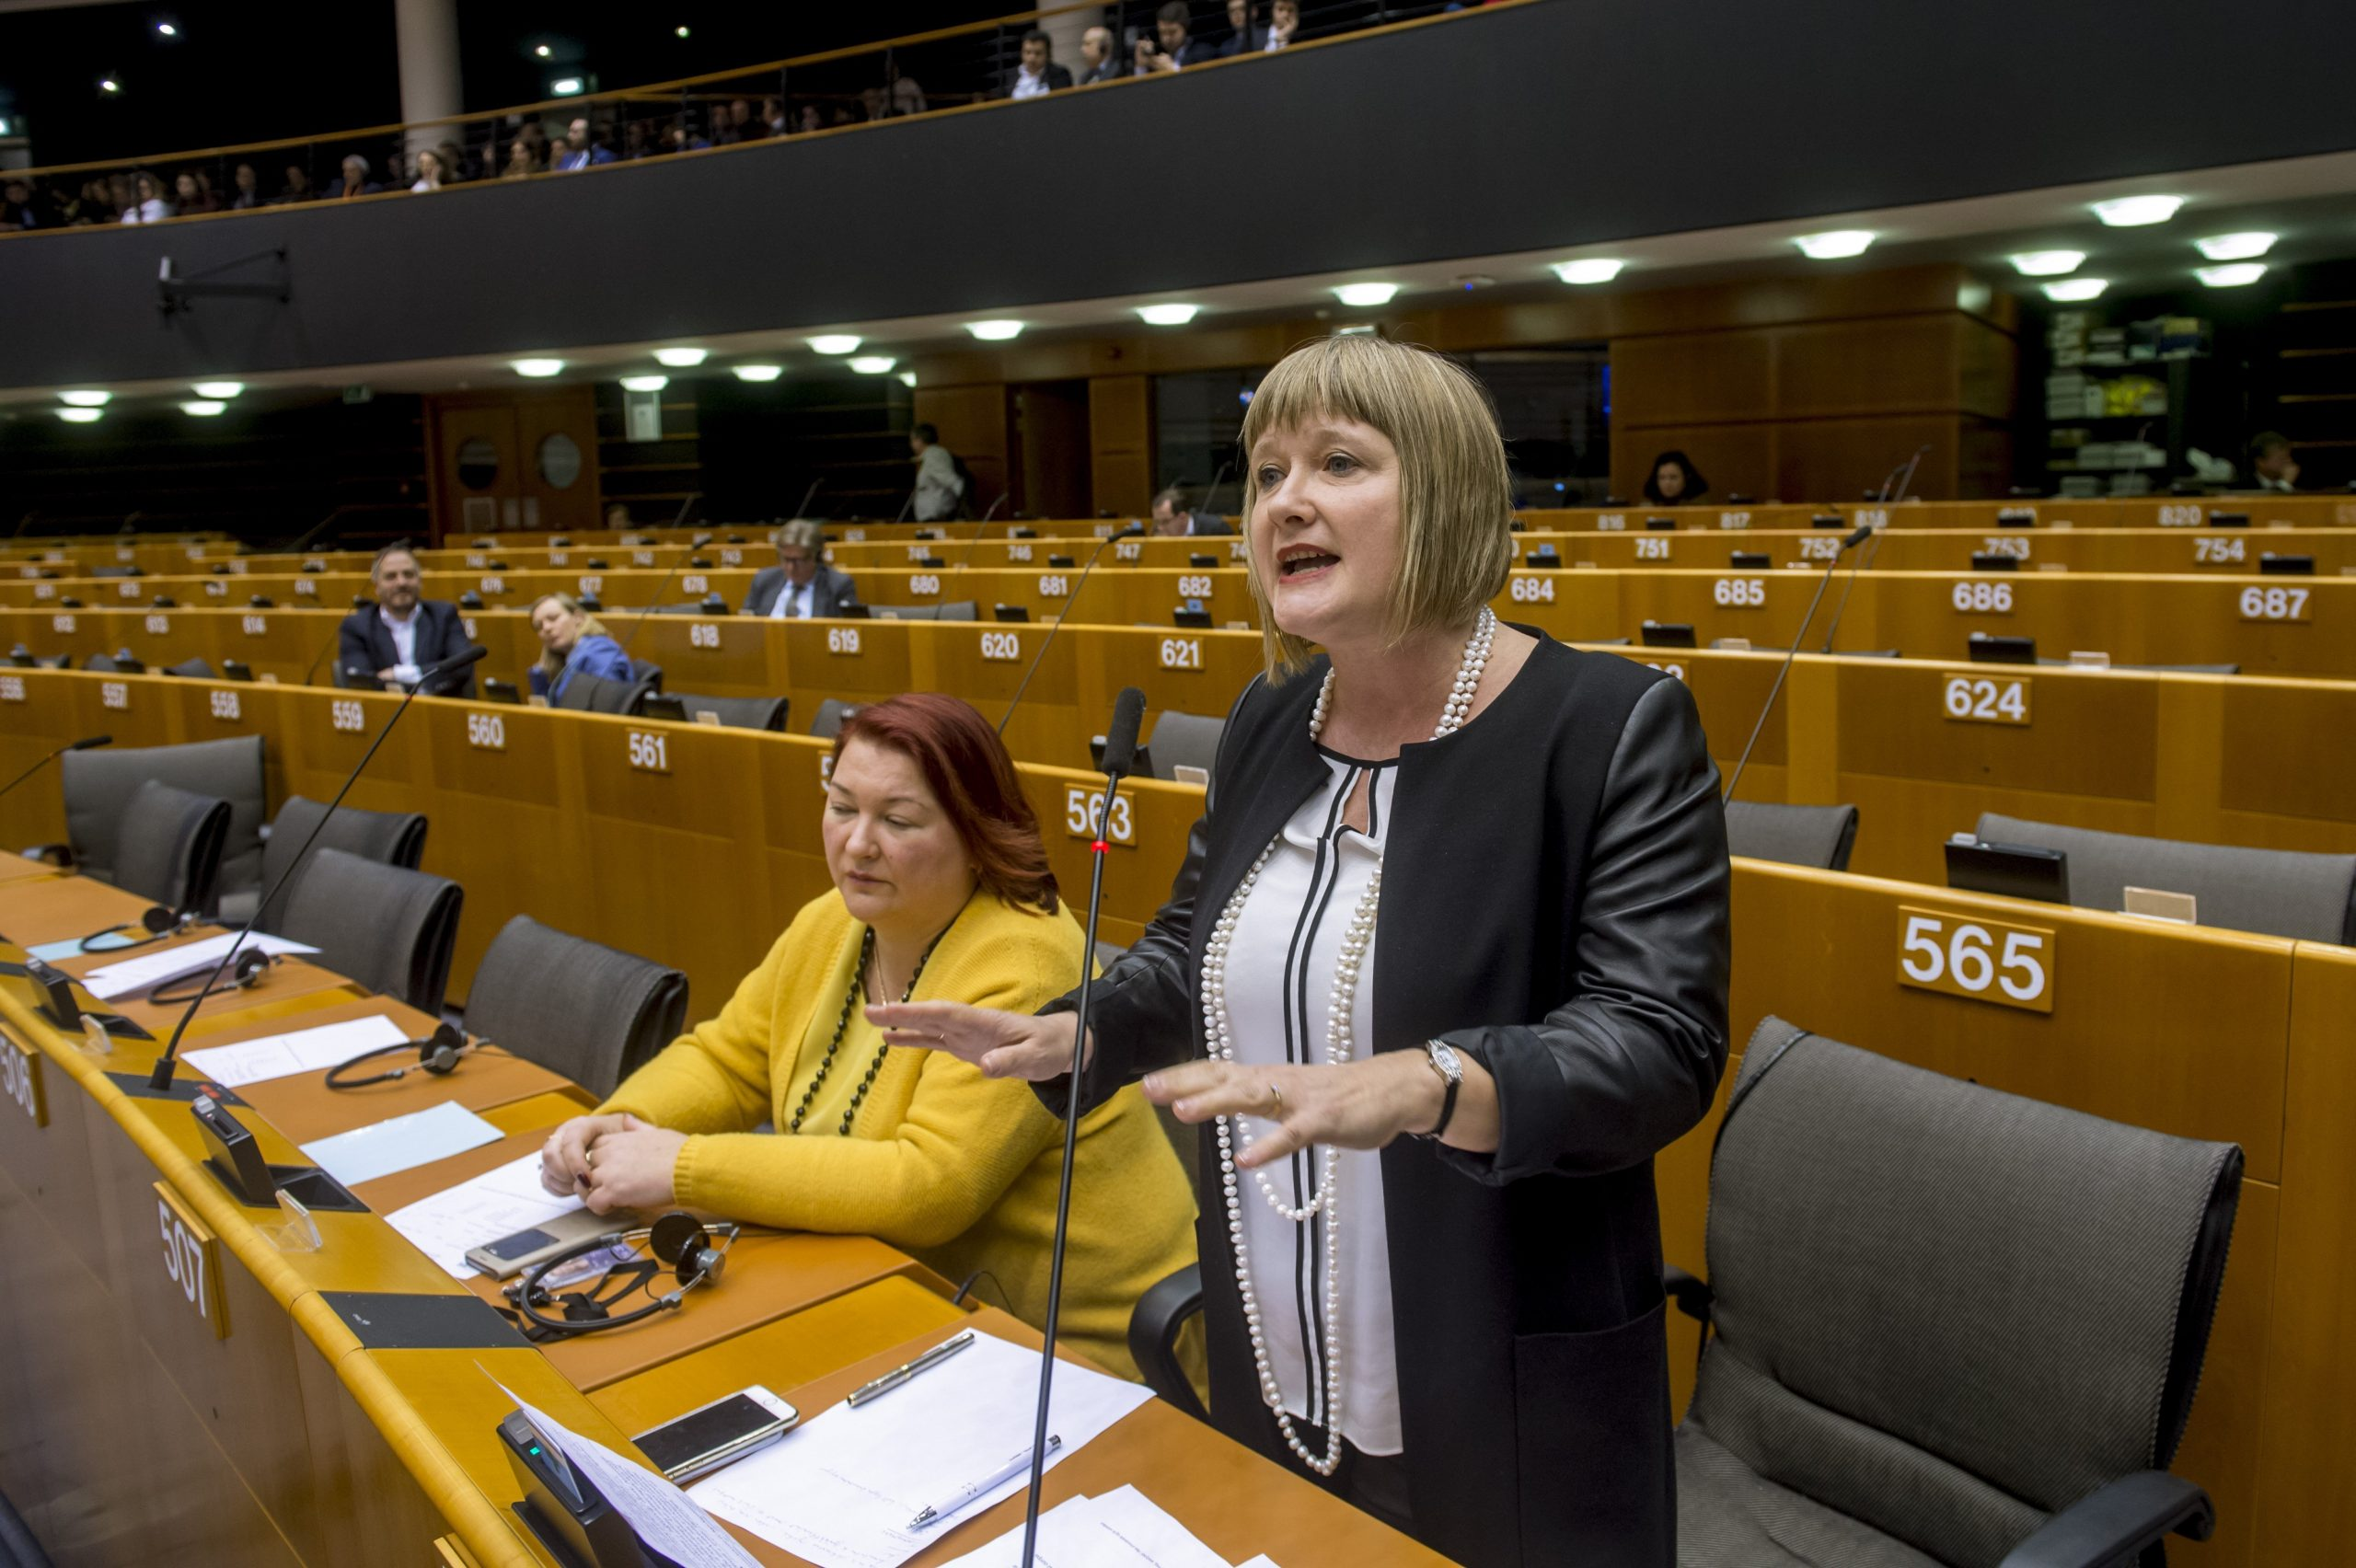 Minority SafePack: Hungary MEPs Urge Stronger EC Support for Protection of Nat'l Minorities